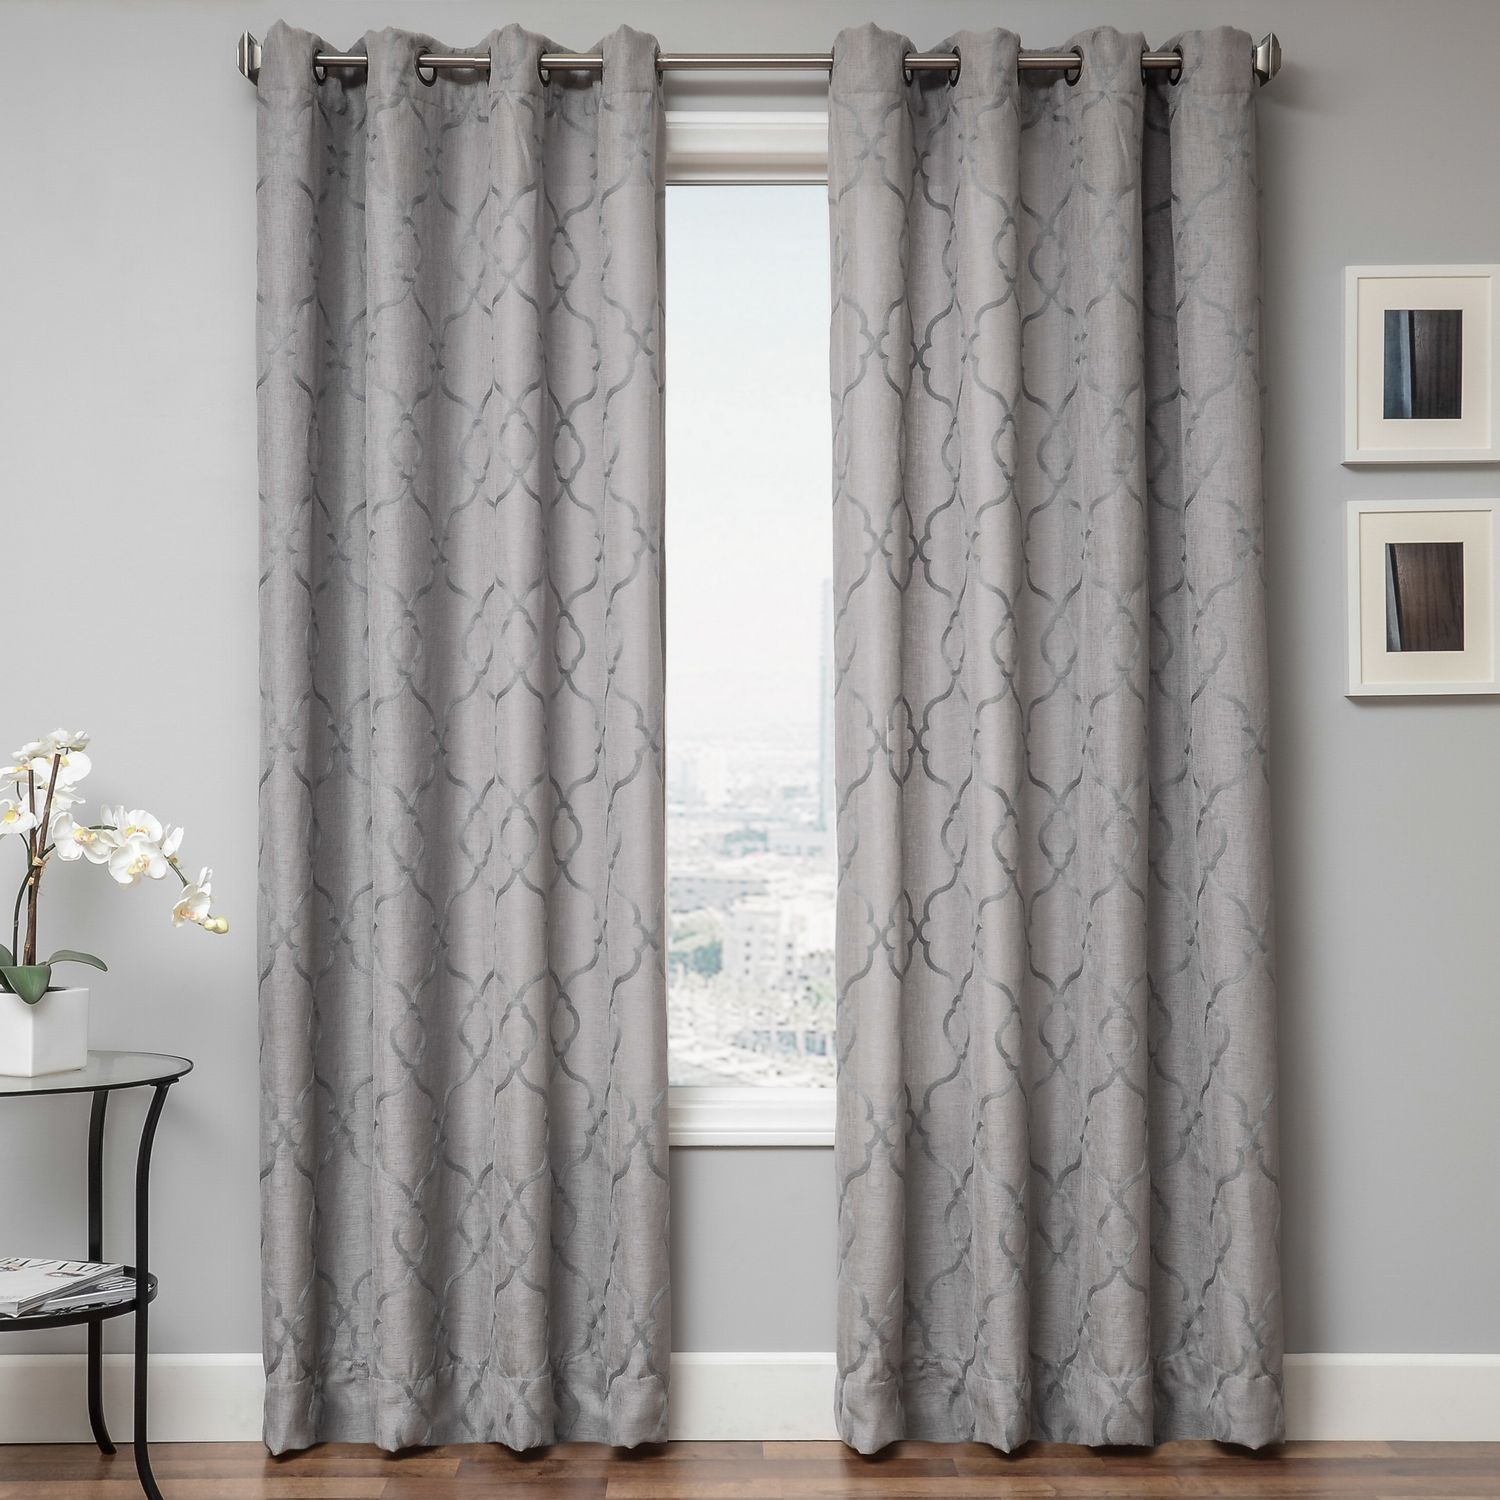 room linen from www gold of infinity faux curtain embroidey curtains living leaf patterned fresh a pair sheer scroll informative